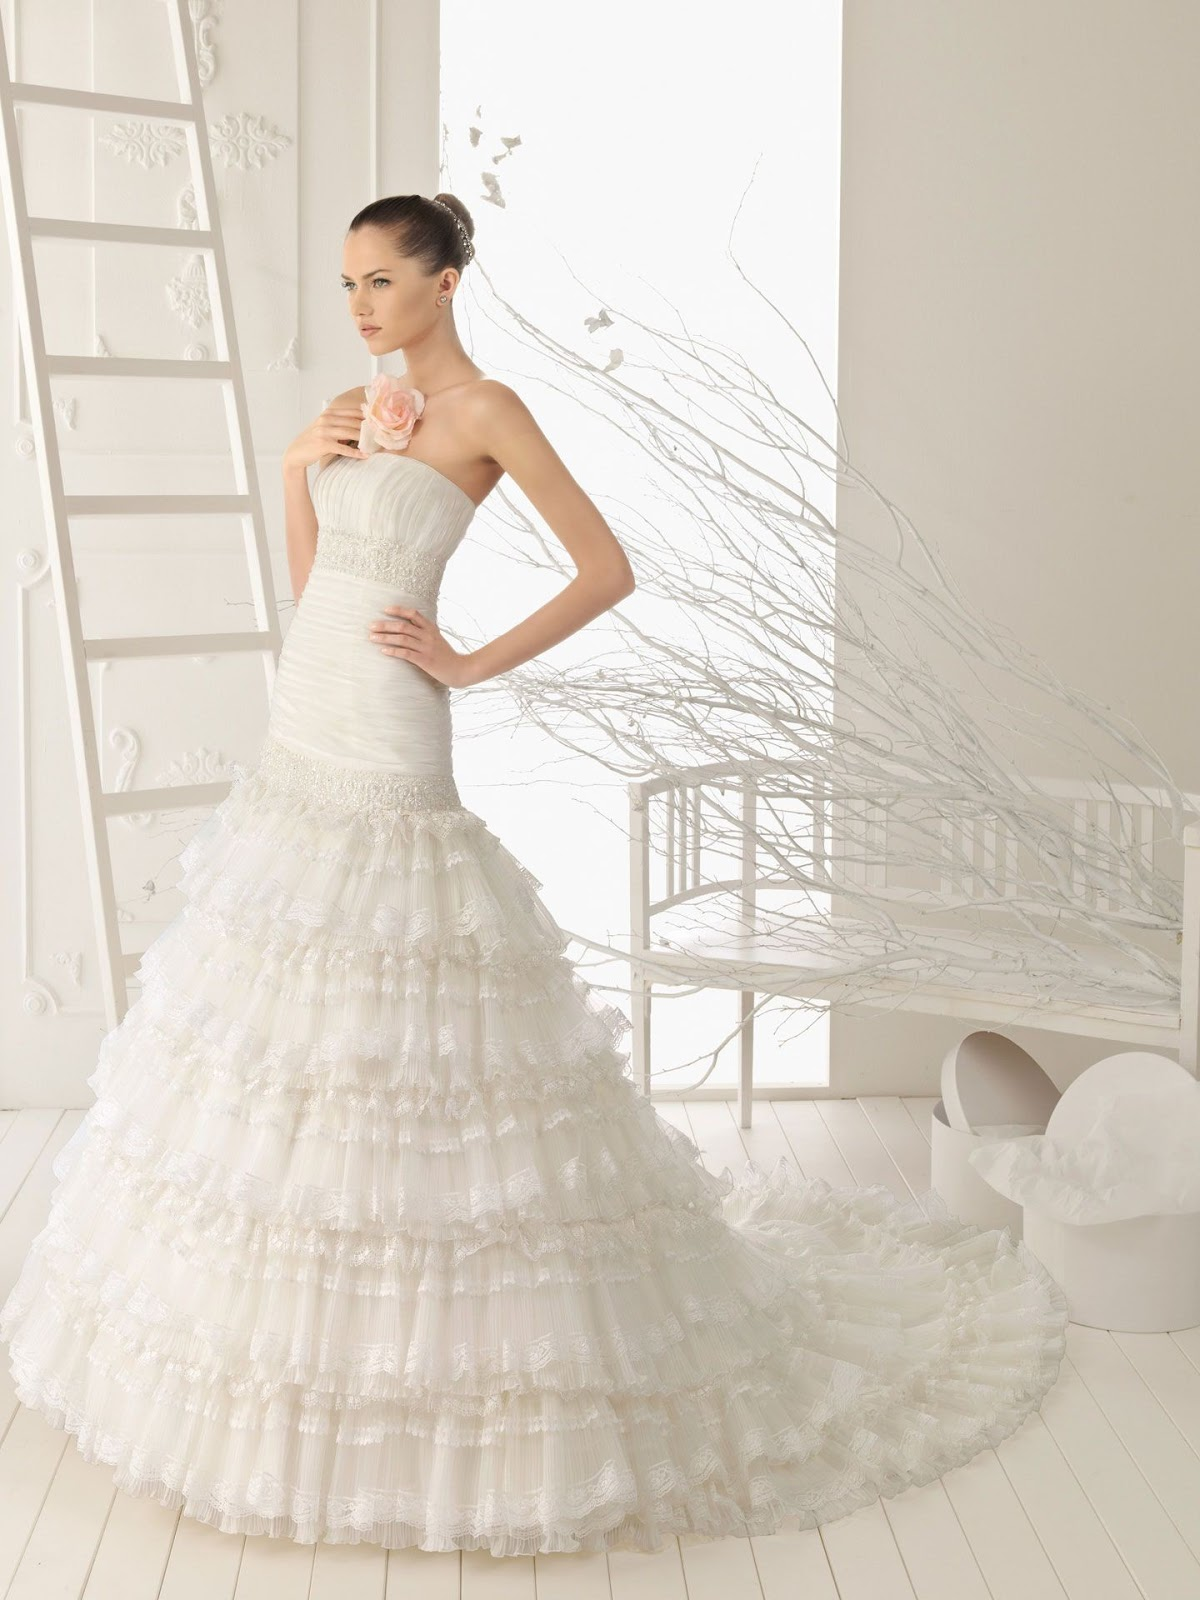 Clothing style wedding dress clothing style for Shirt dress wedding gown